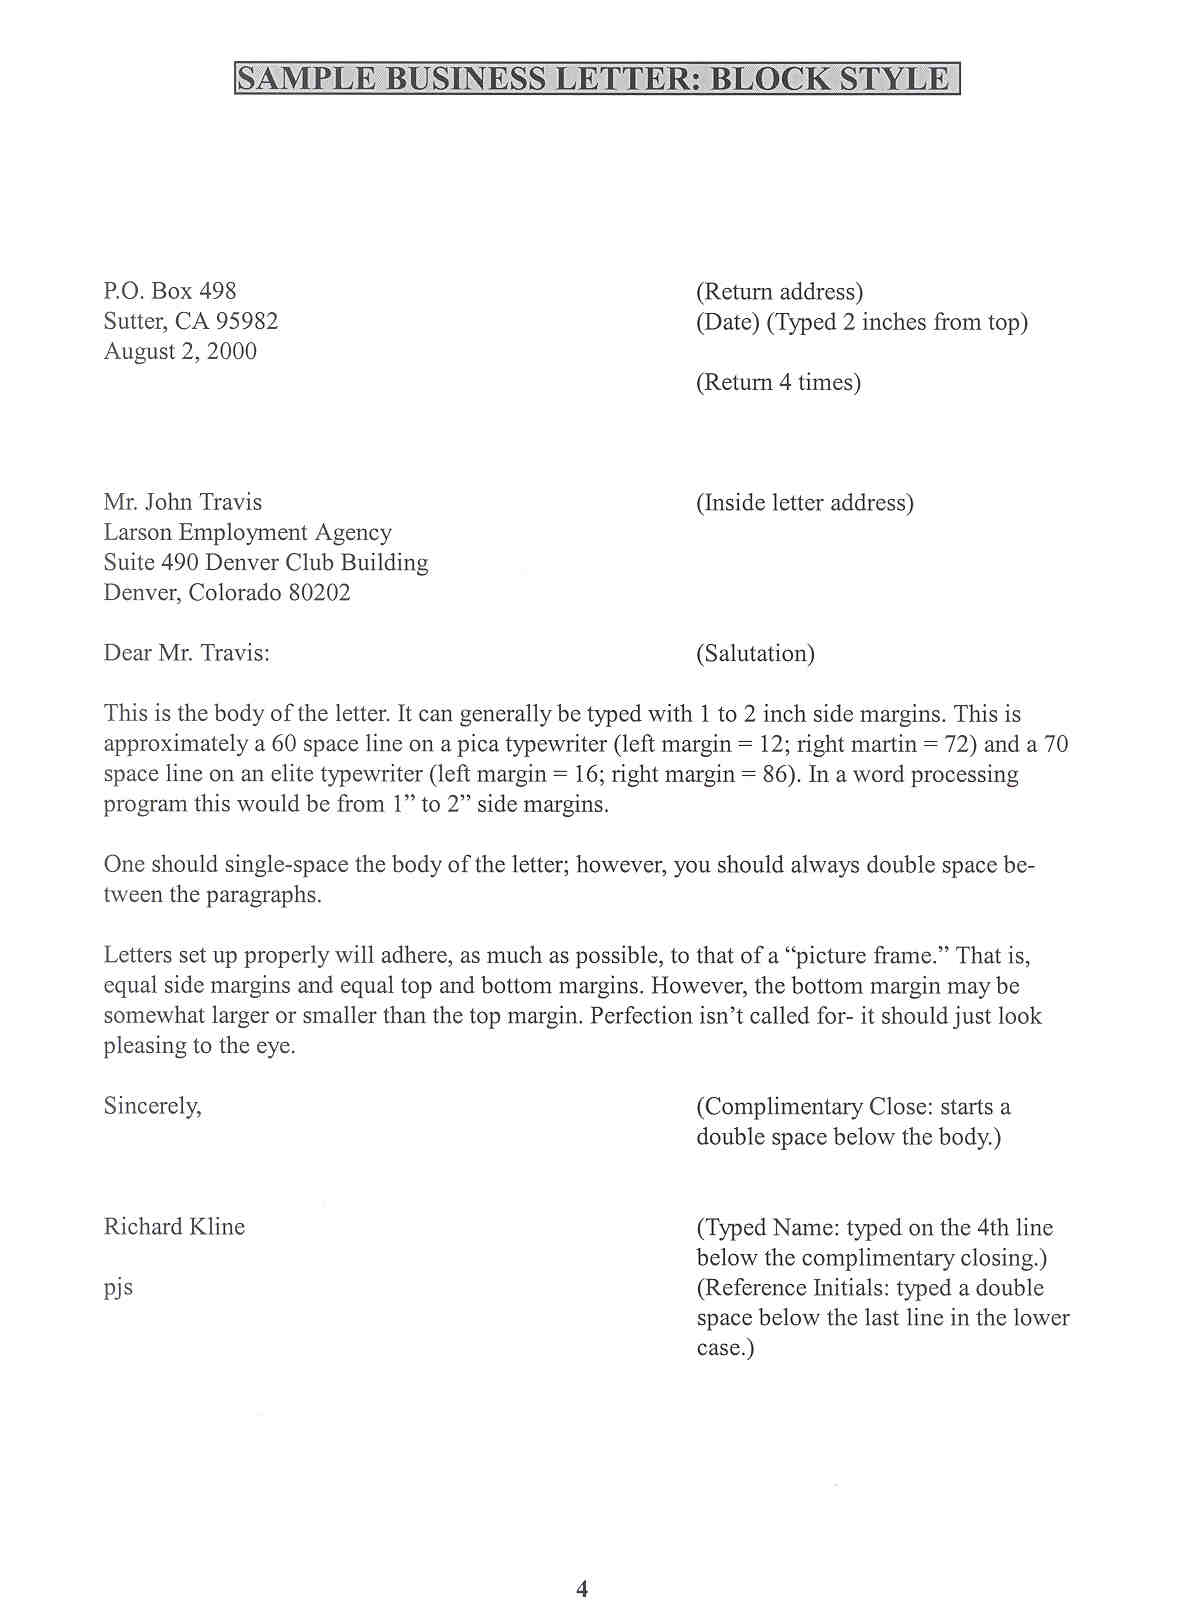 writing a business letter business letter format dear sample business letter 11794